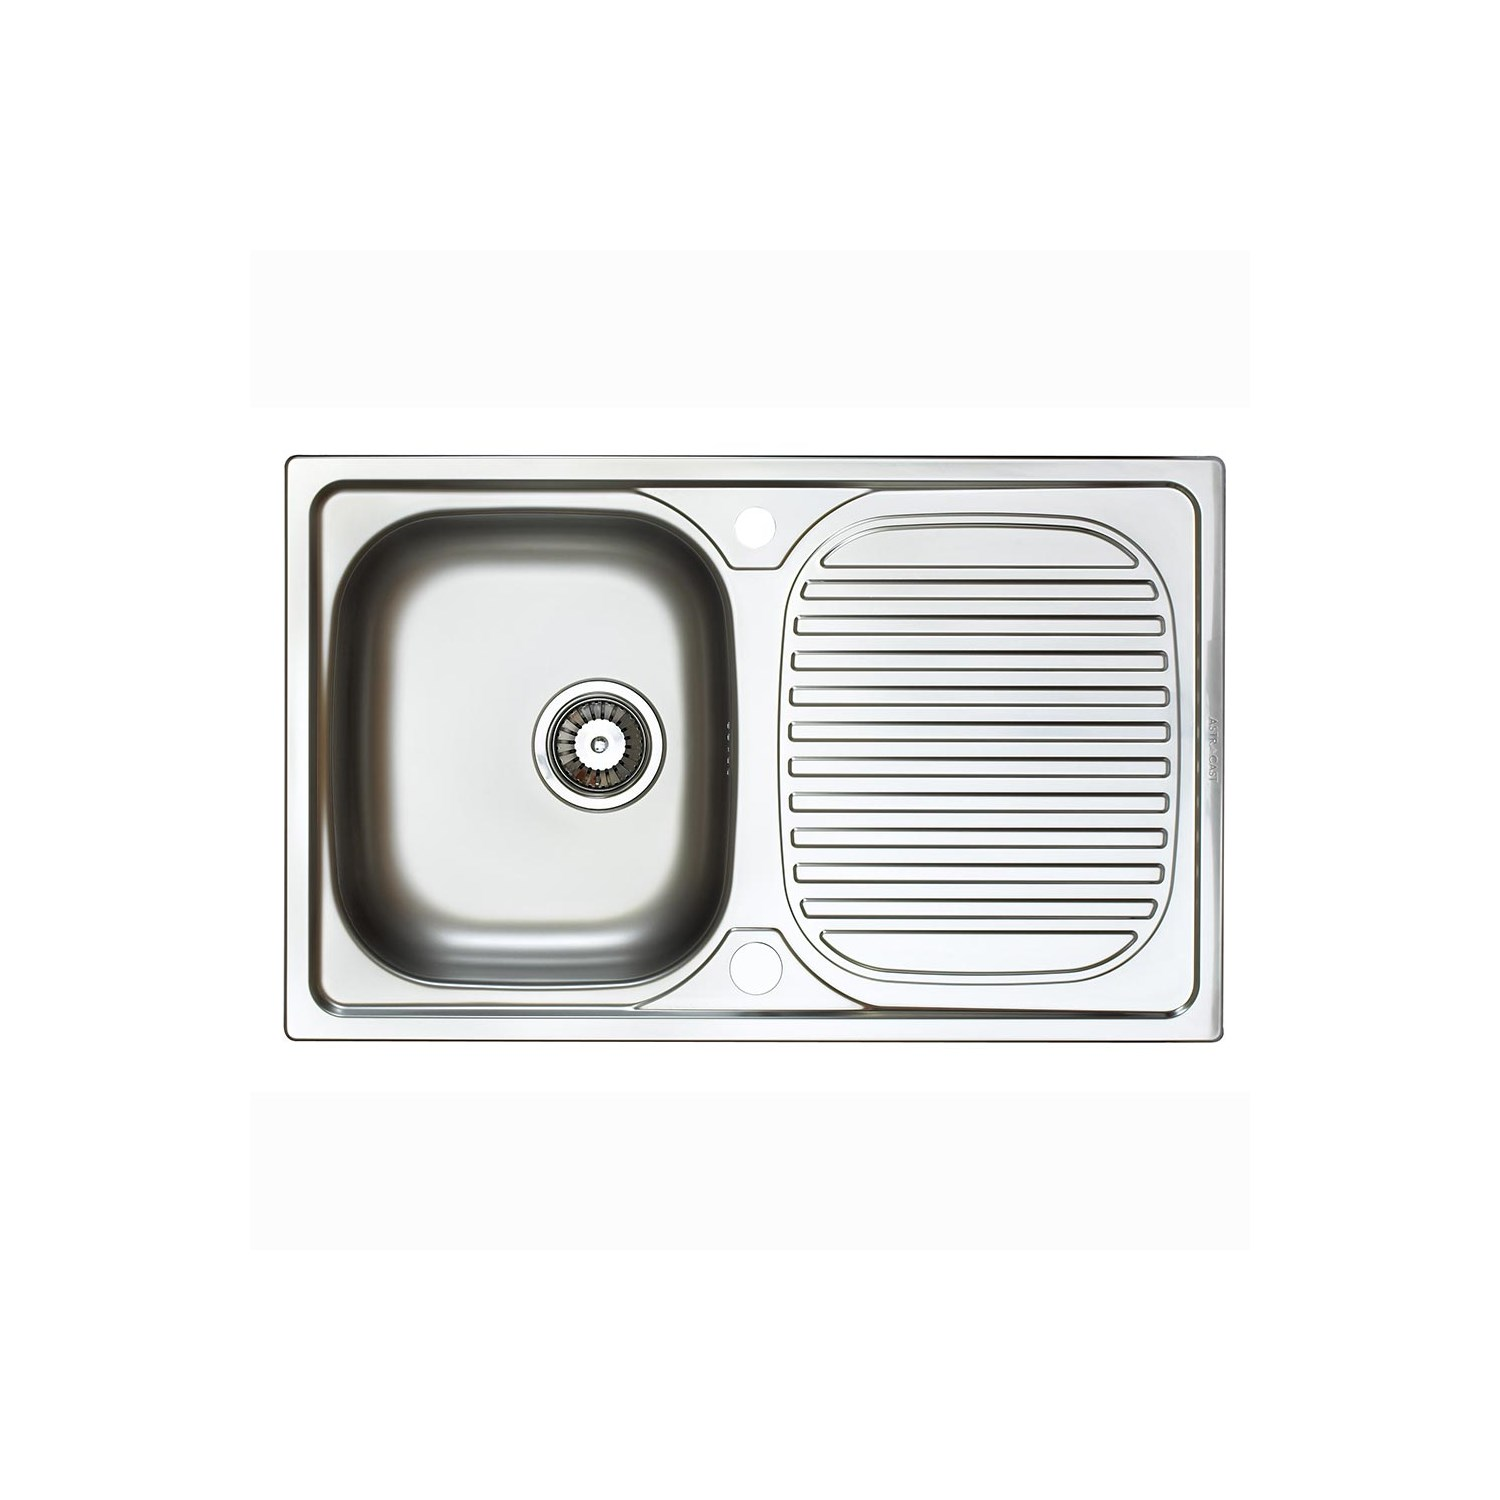 Astracast aegean compact single bowl polished stainless steel sink with reversible drainer 800 x 500mm tap warehouse